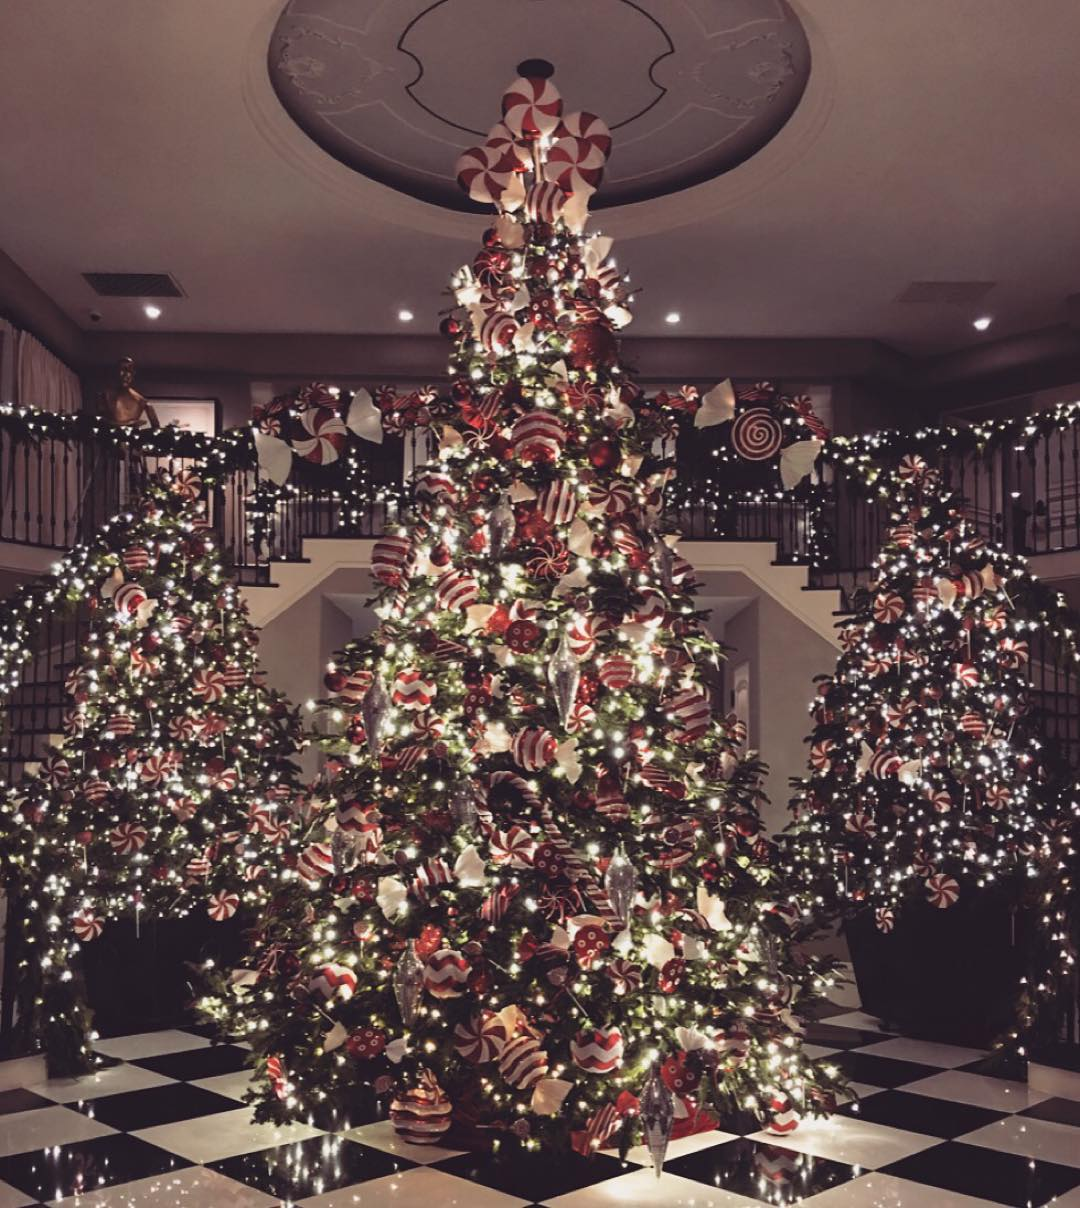 Christmas Tree Facebook Cover Photo: See The Best Celebrity Christmas Trees Of 2015